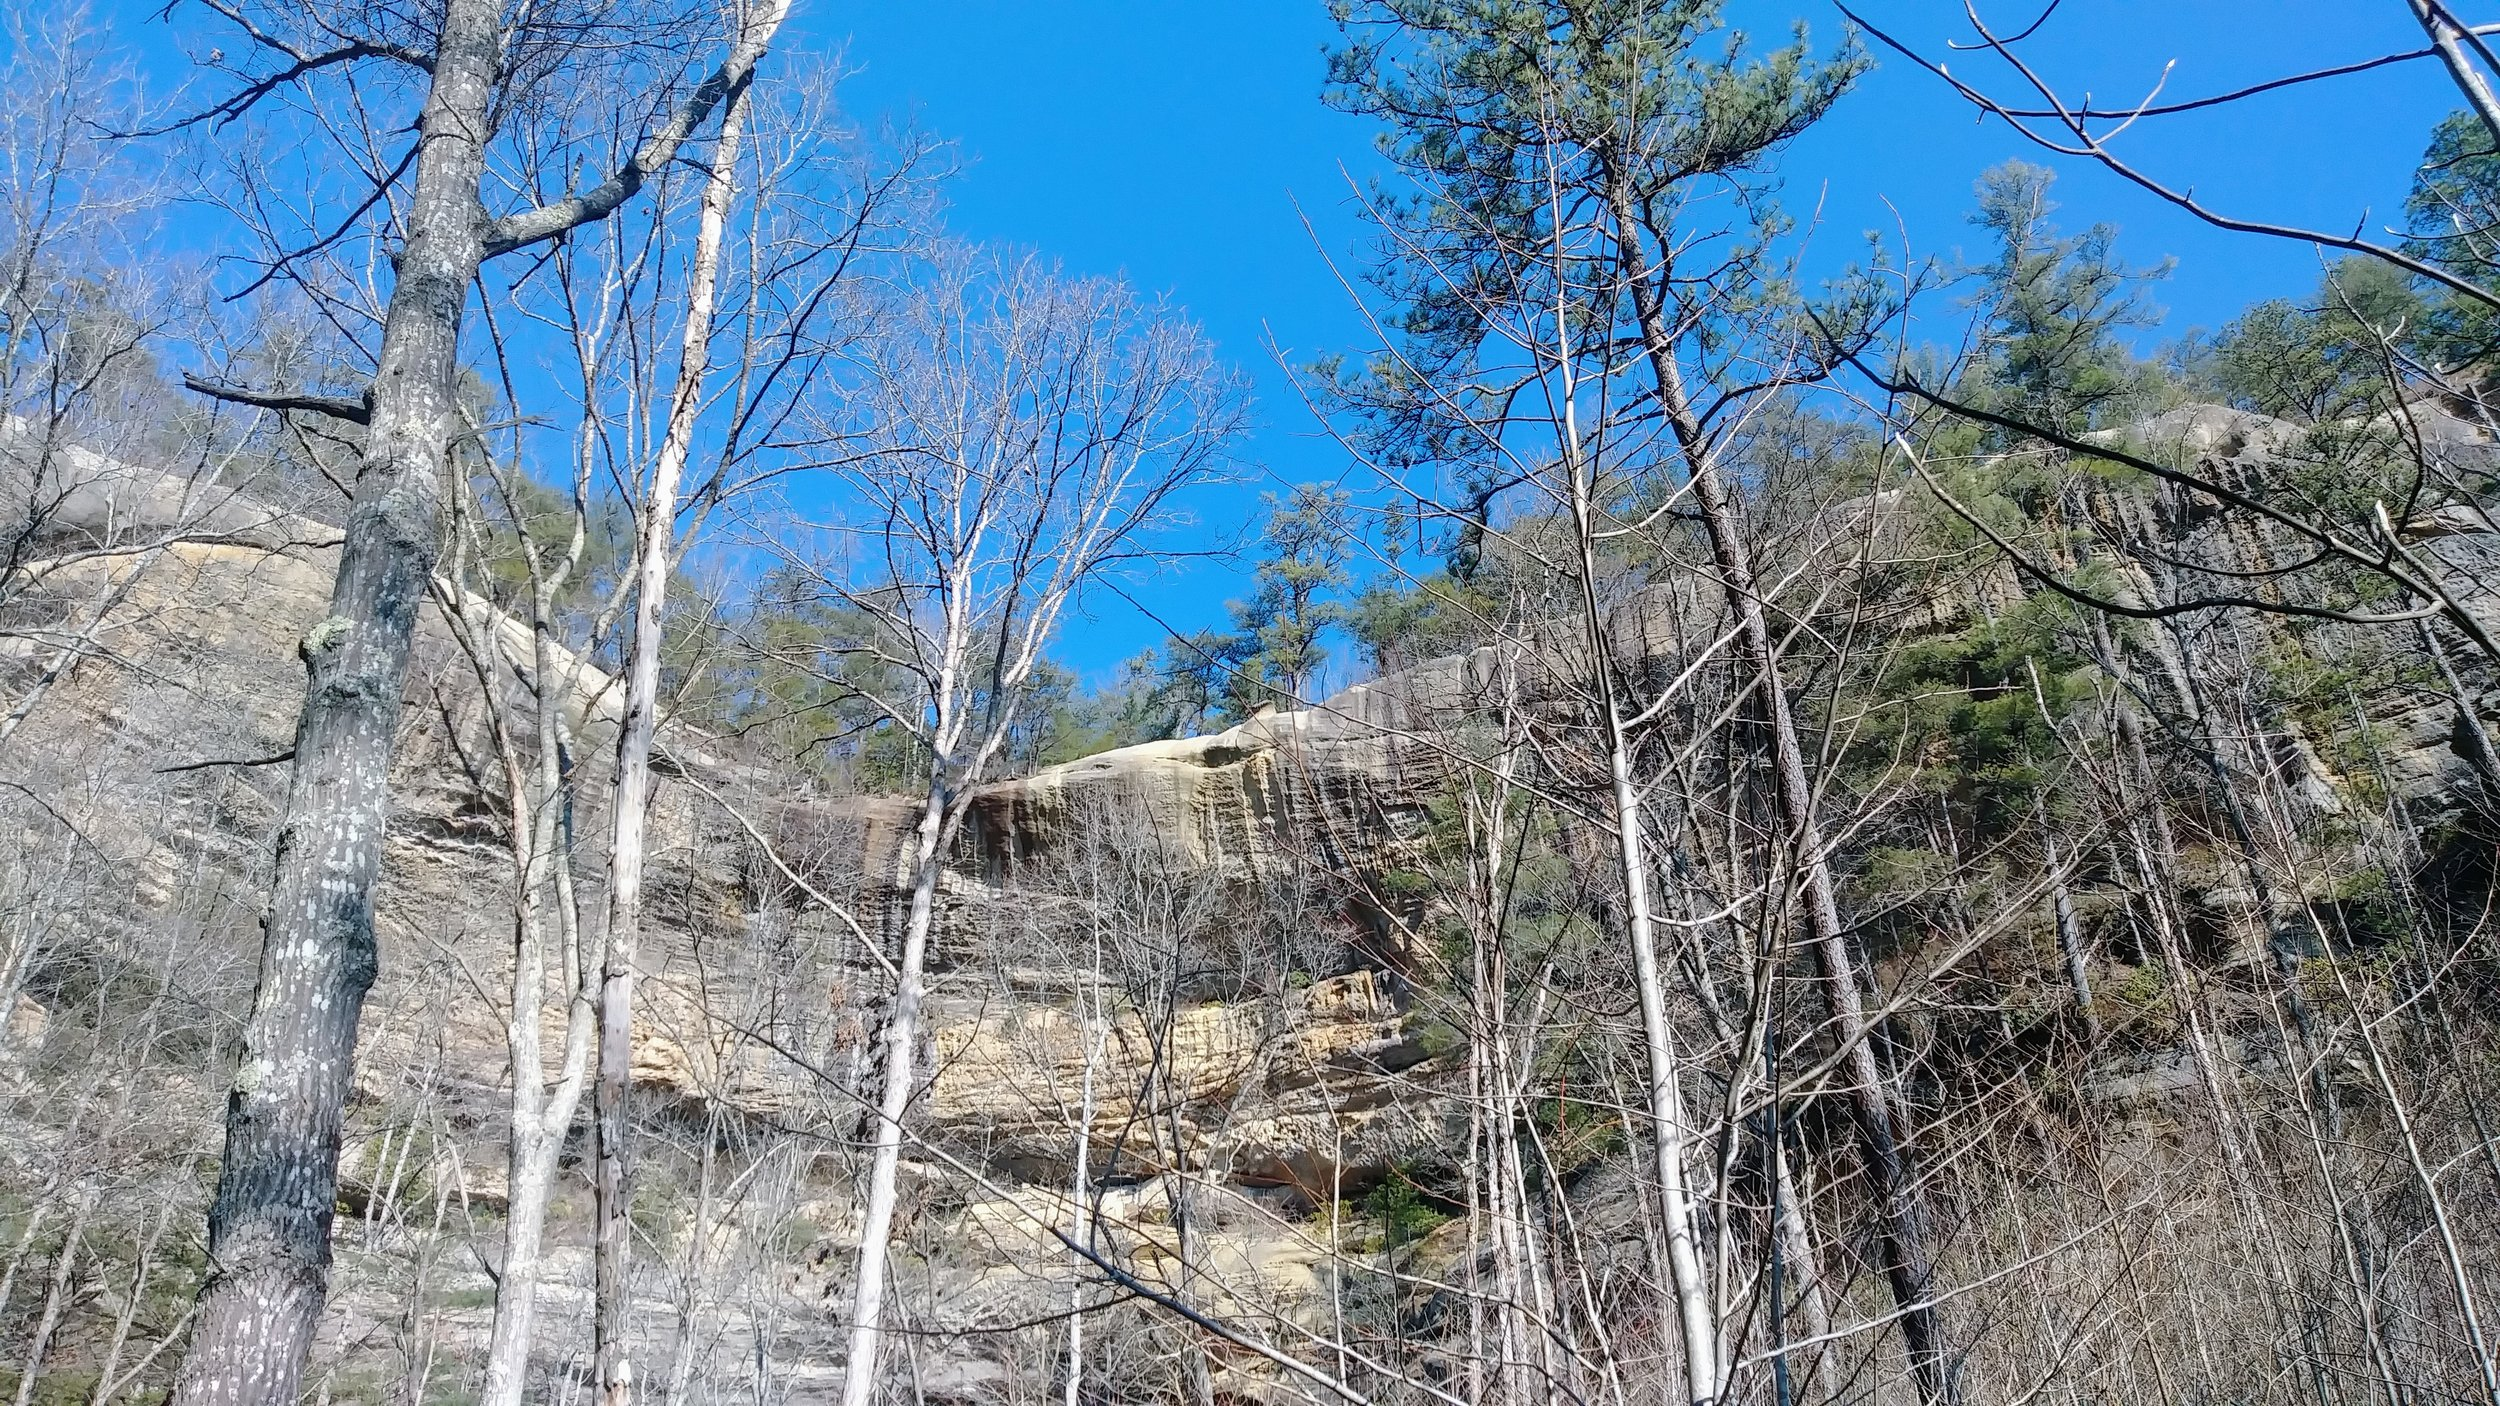 Looking up at Frog's Head on Indian Staircase Loop, Sheltowee Trace